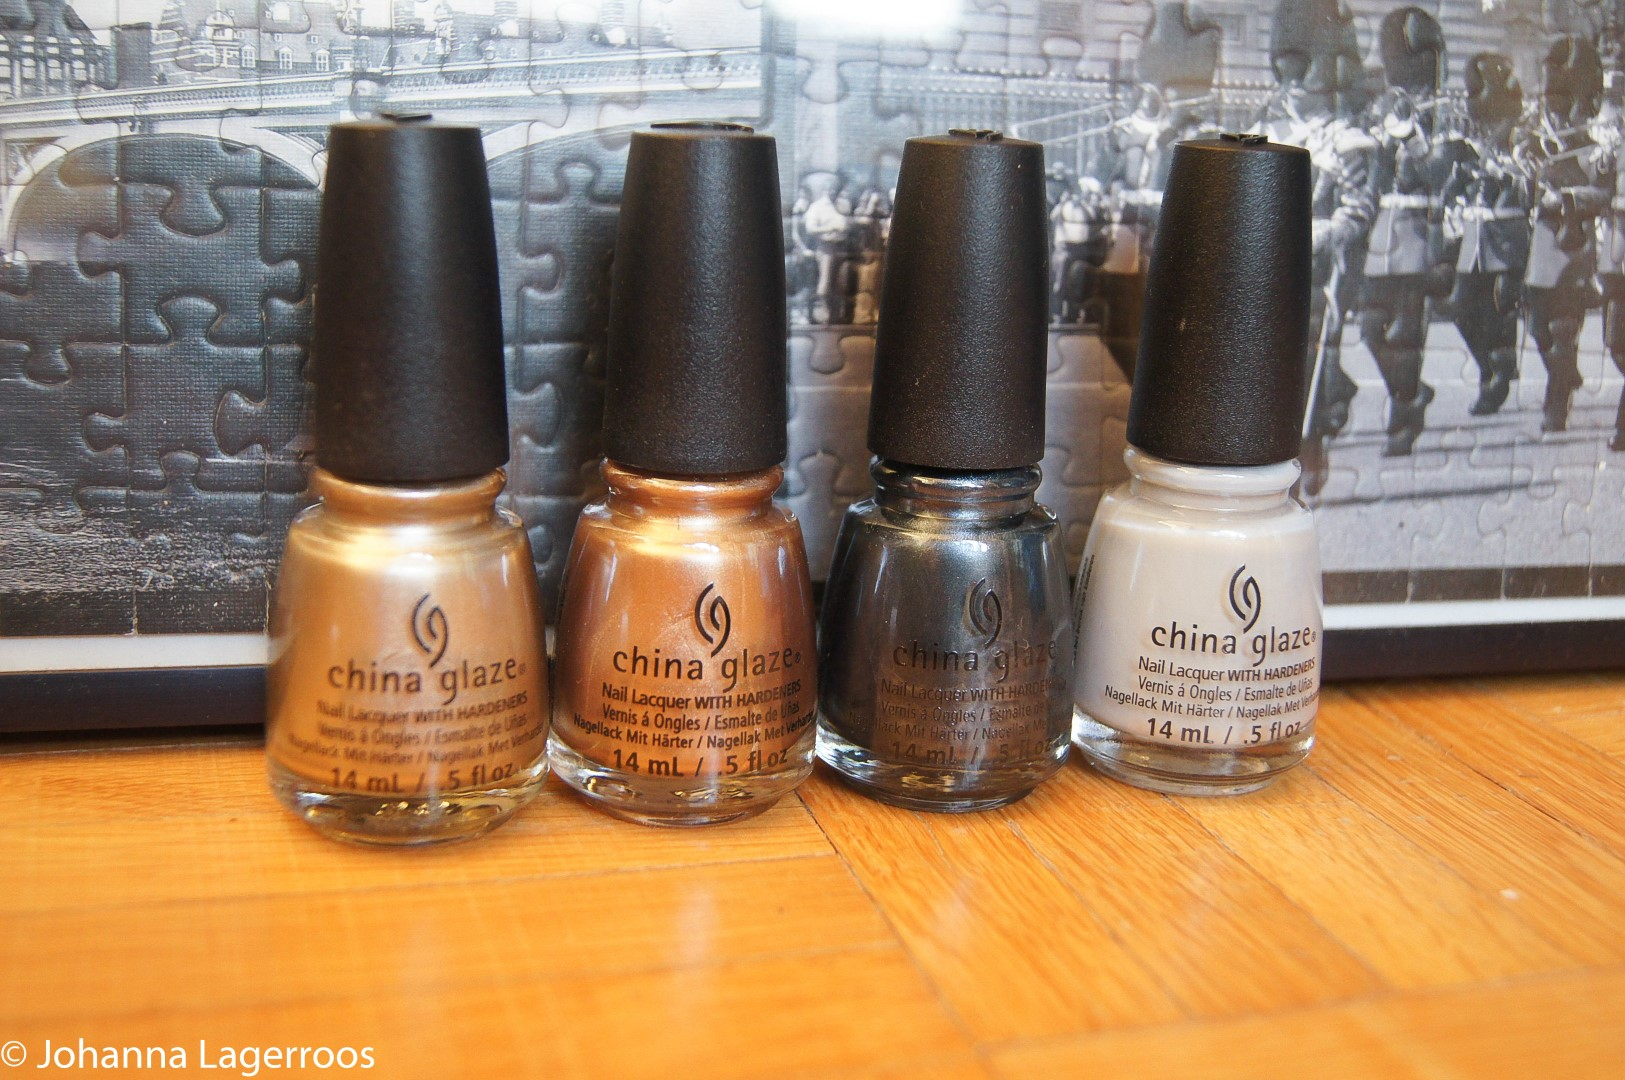 China glaze golds